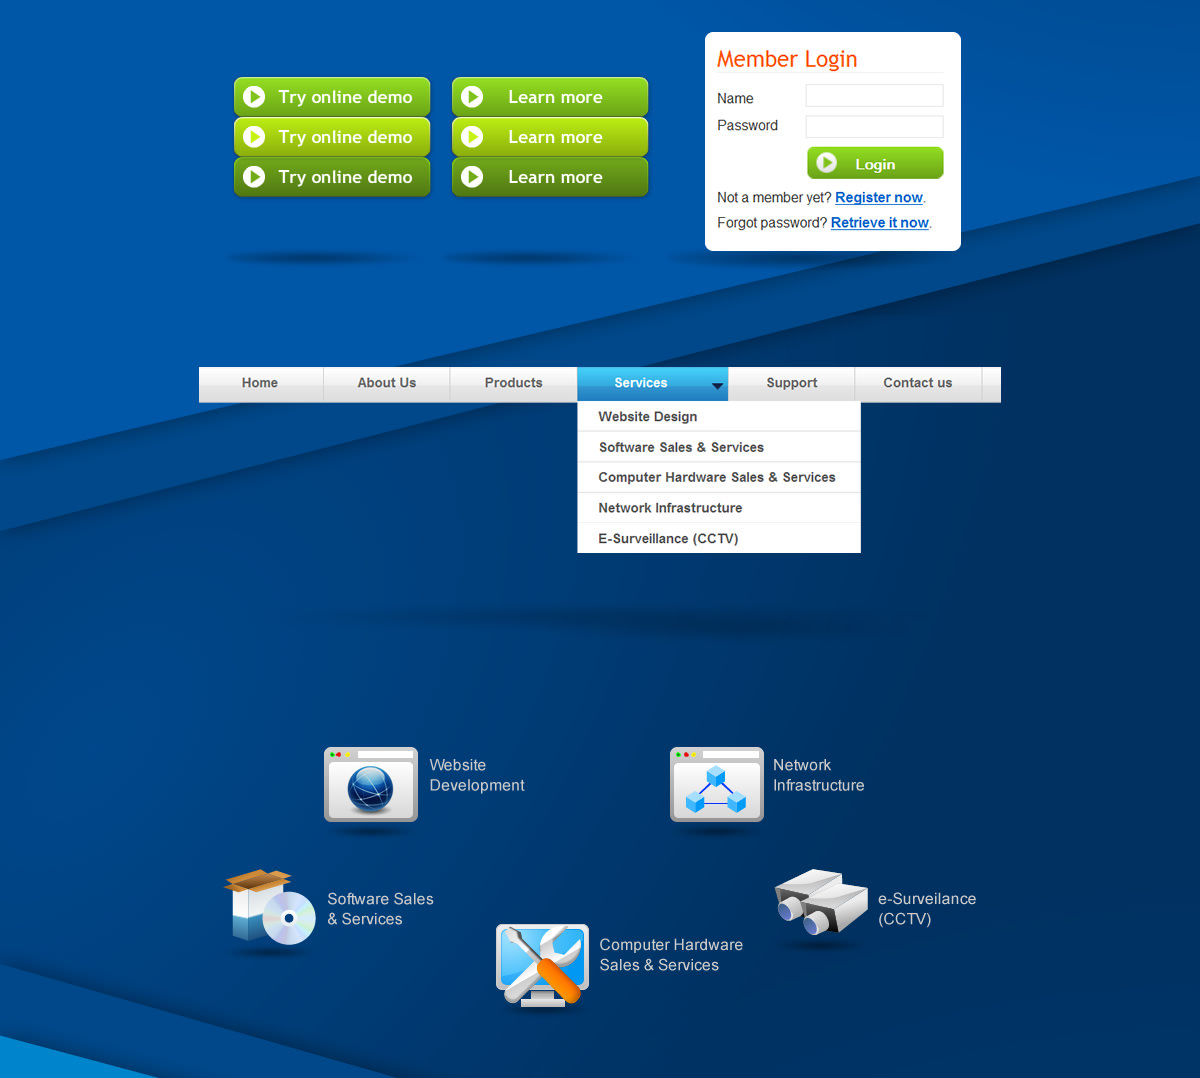 buttons on hover state, active state, main menu, logo design of cctv, website, web apps, technical support